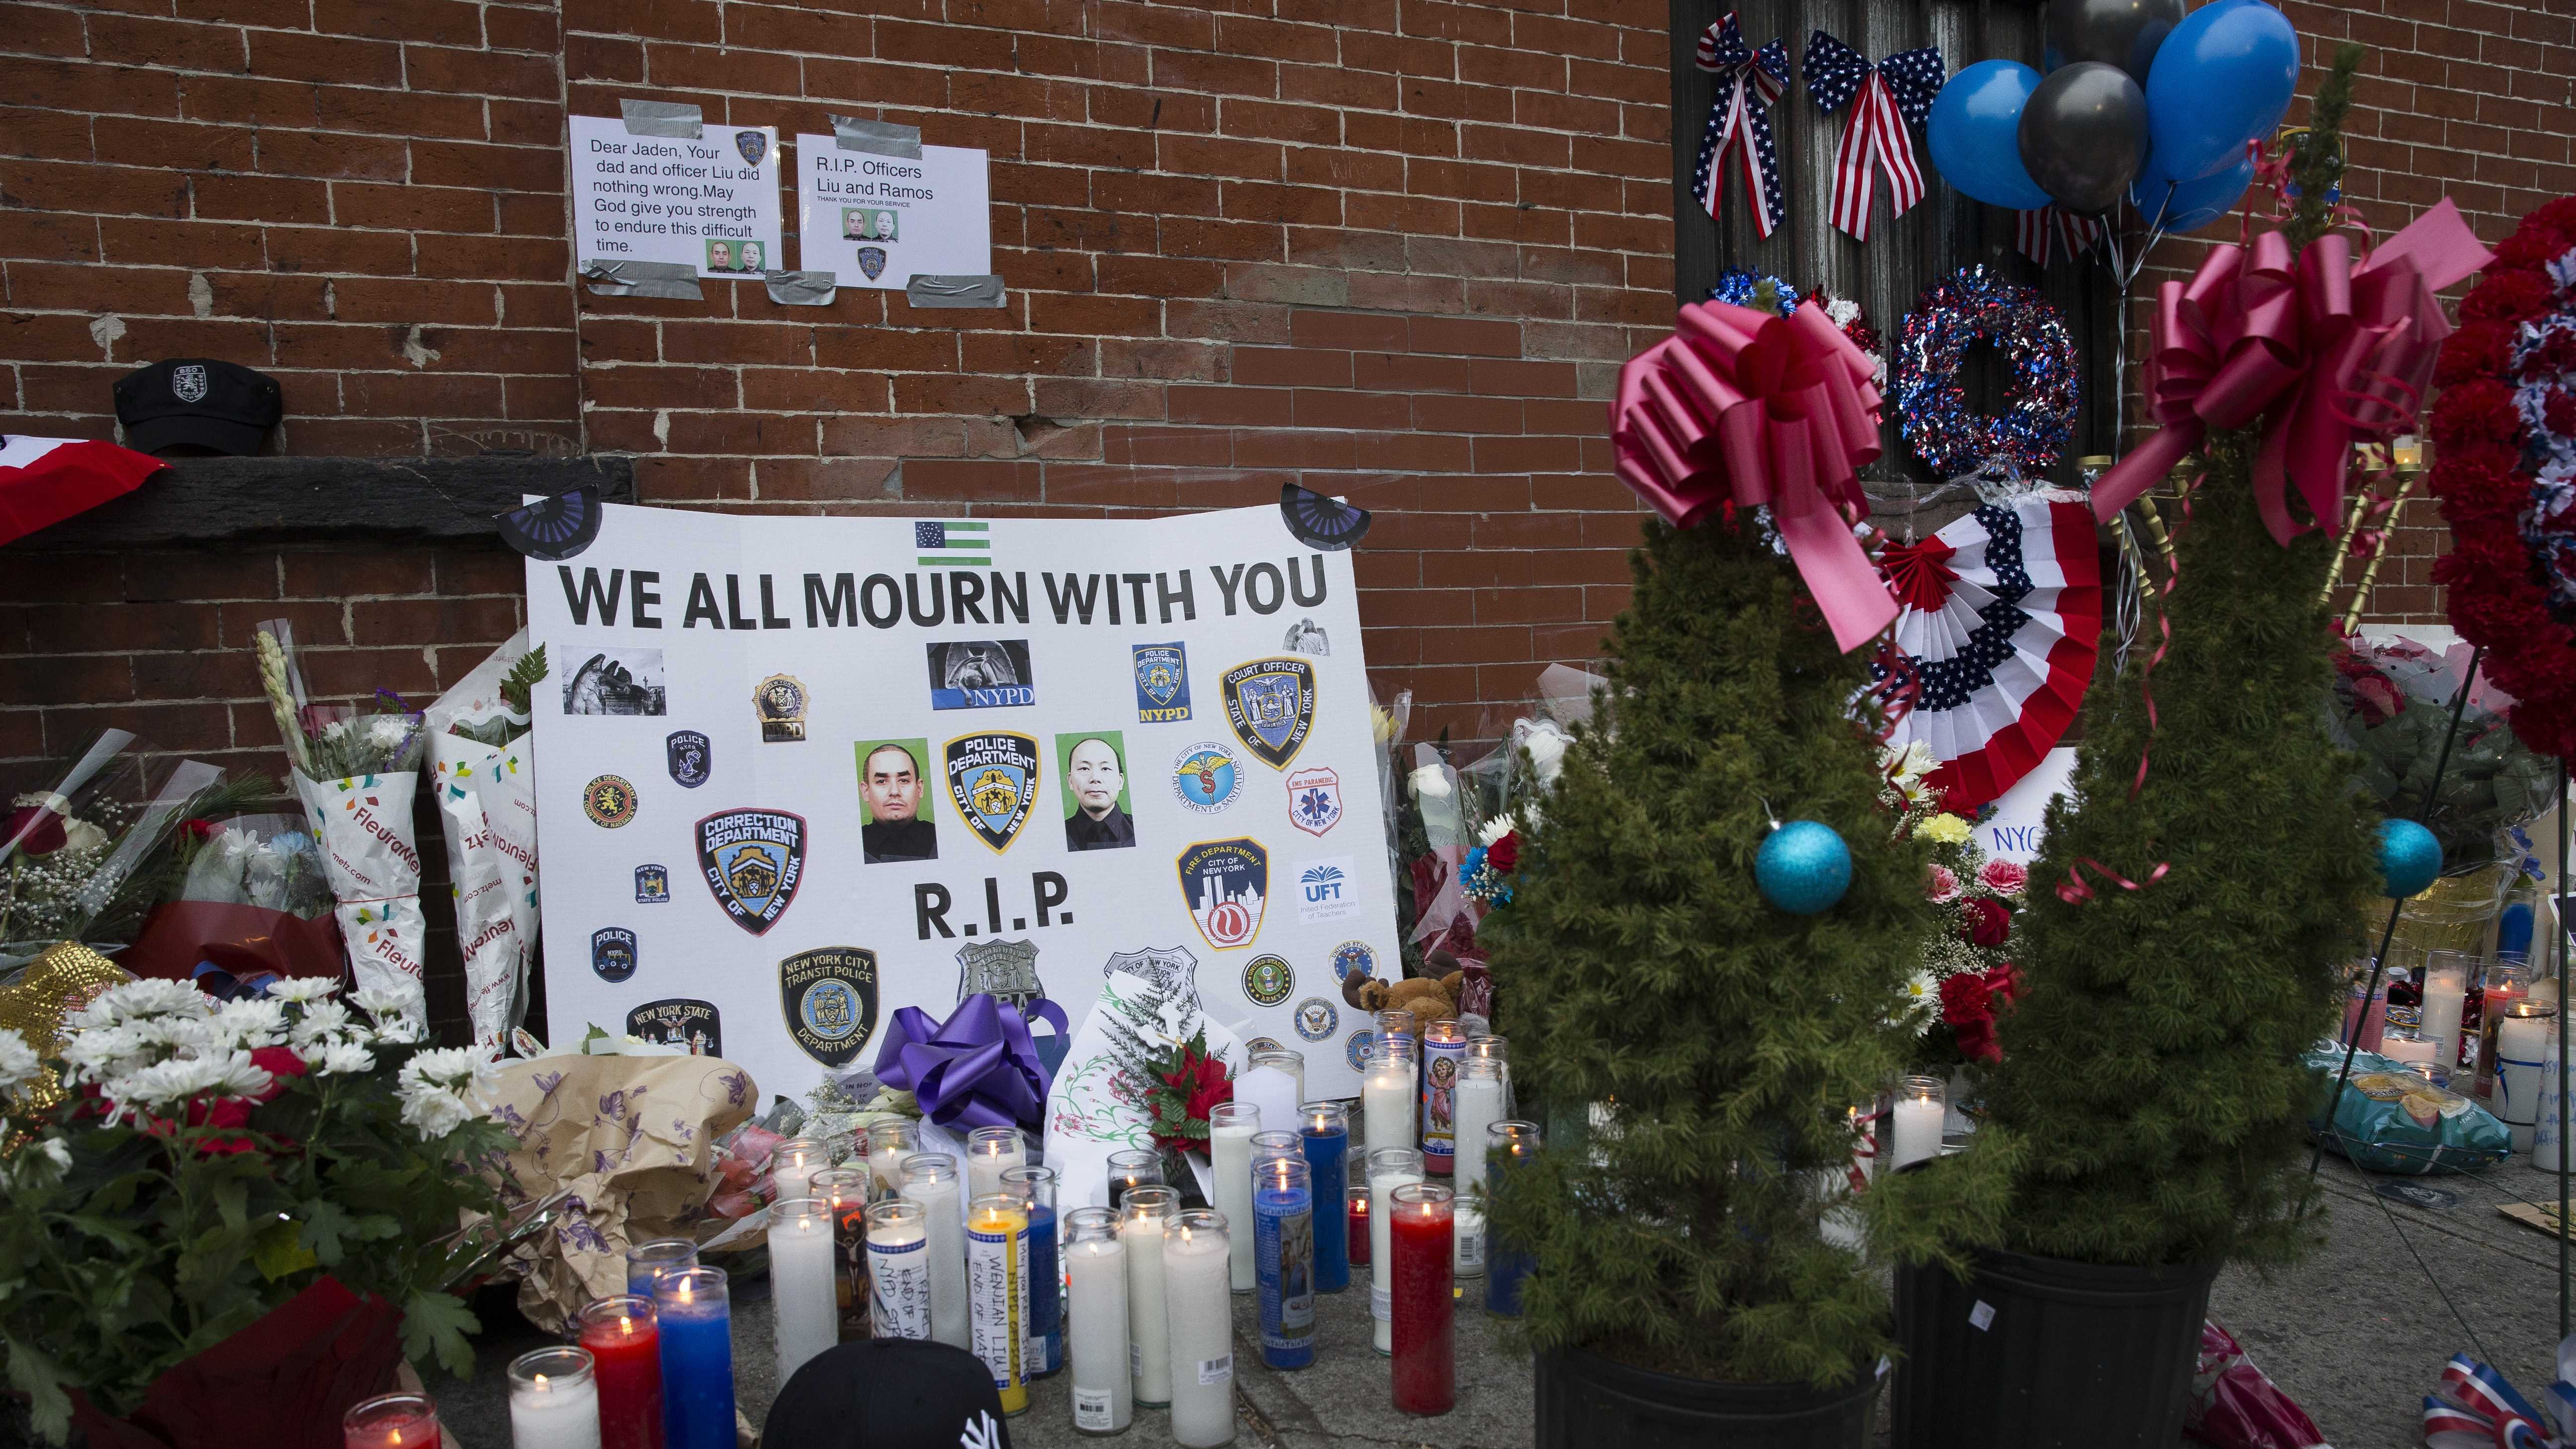 Christmas trees rest on the pavement at a makeshift memorial near the site where New York Police Department officers Rafael Ramos and Wenjian Liu were murdered in the Brooklyn borough of New York, Monday, Dec. 22, 2014.